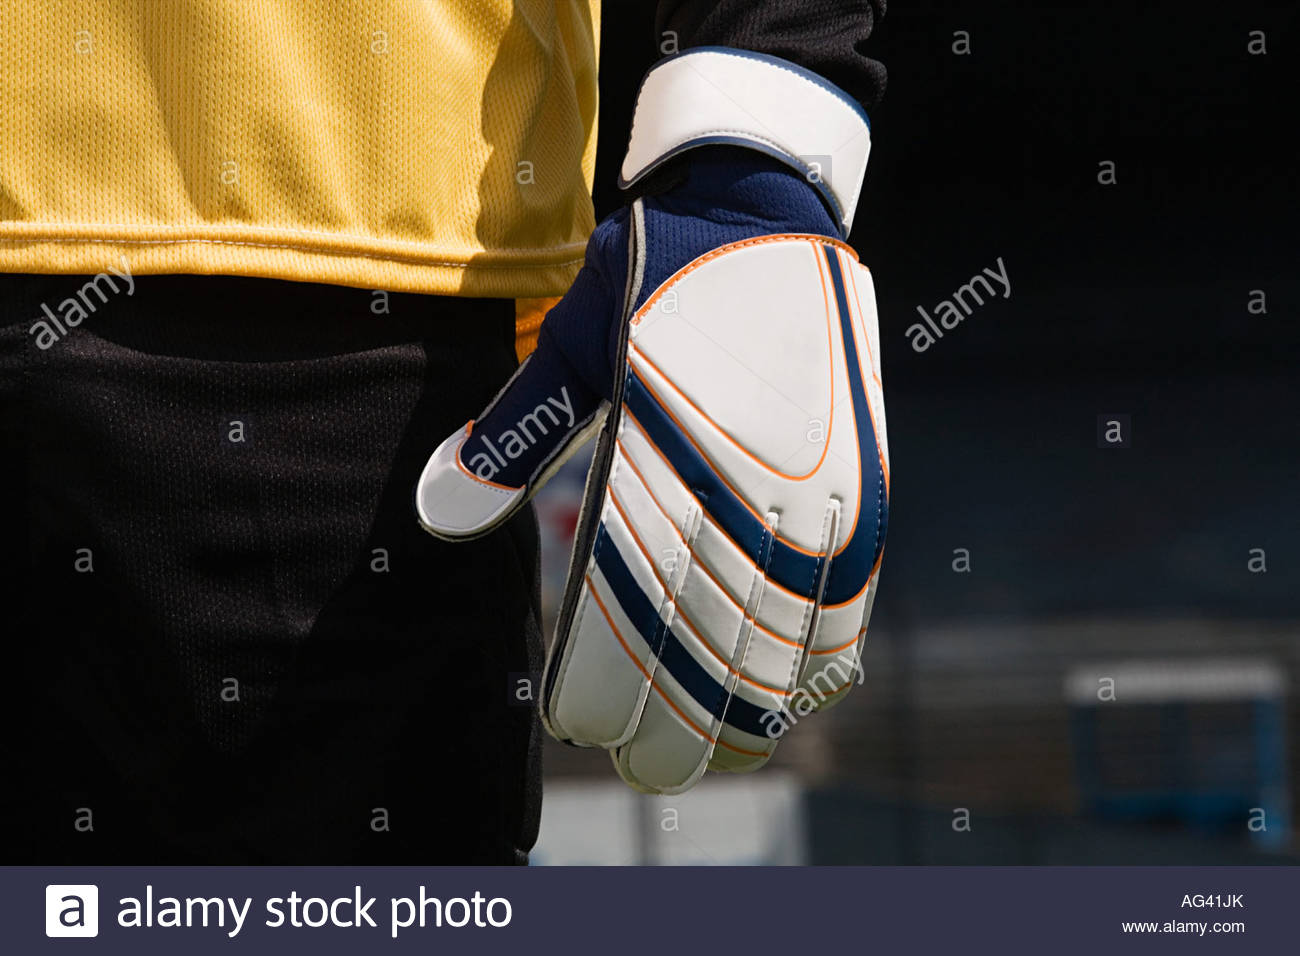 A goalkeepers glove - Stock Image